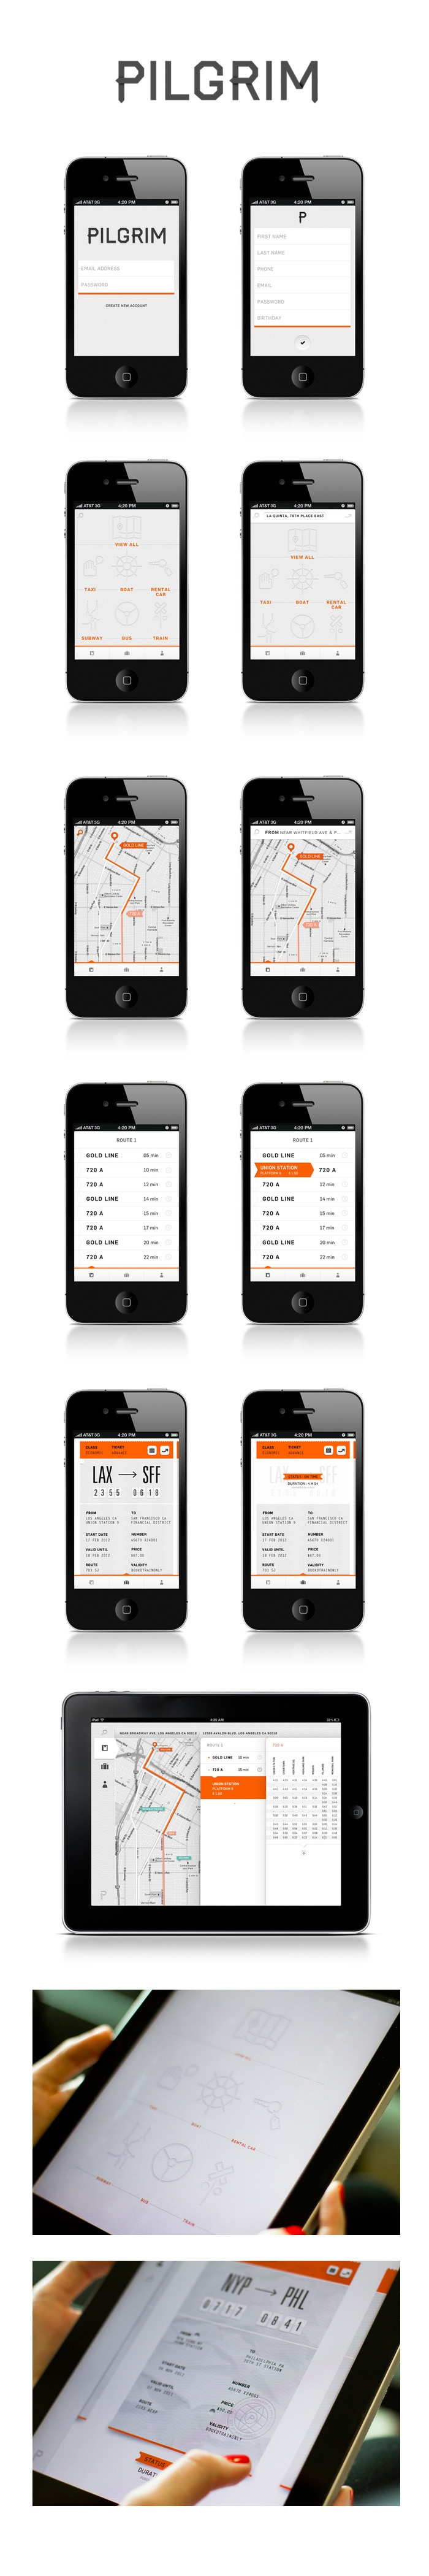 """Pilgrim by Nicole Gavrilles / via Behance / """"Pilgrim is a mobile application that will navigate you to your destination once you leave the airport. After the user enters his destination, Pilgrim will offer various routes and transportation options. We want the user to feel like they are on an adventure by providing them the freedom to pick the route they feel is the best"""""""